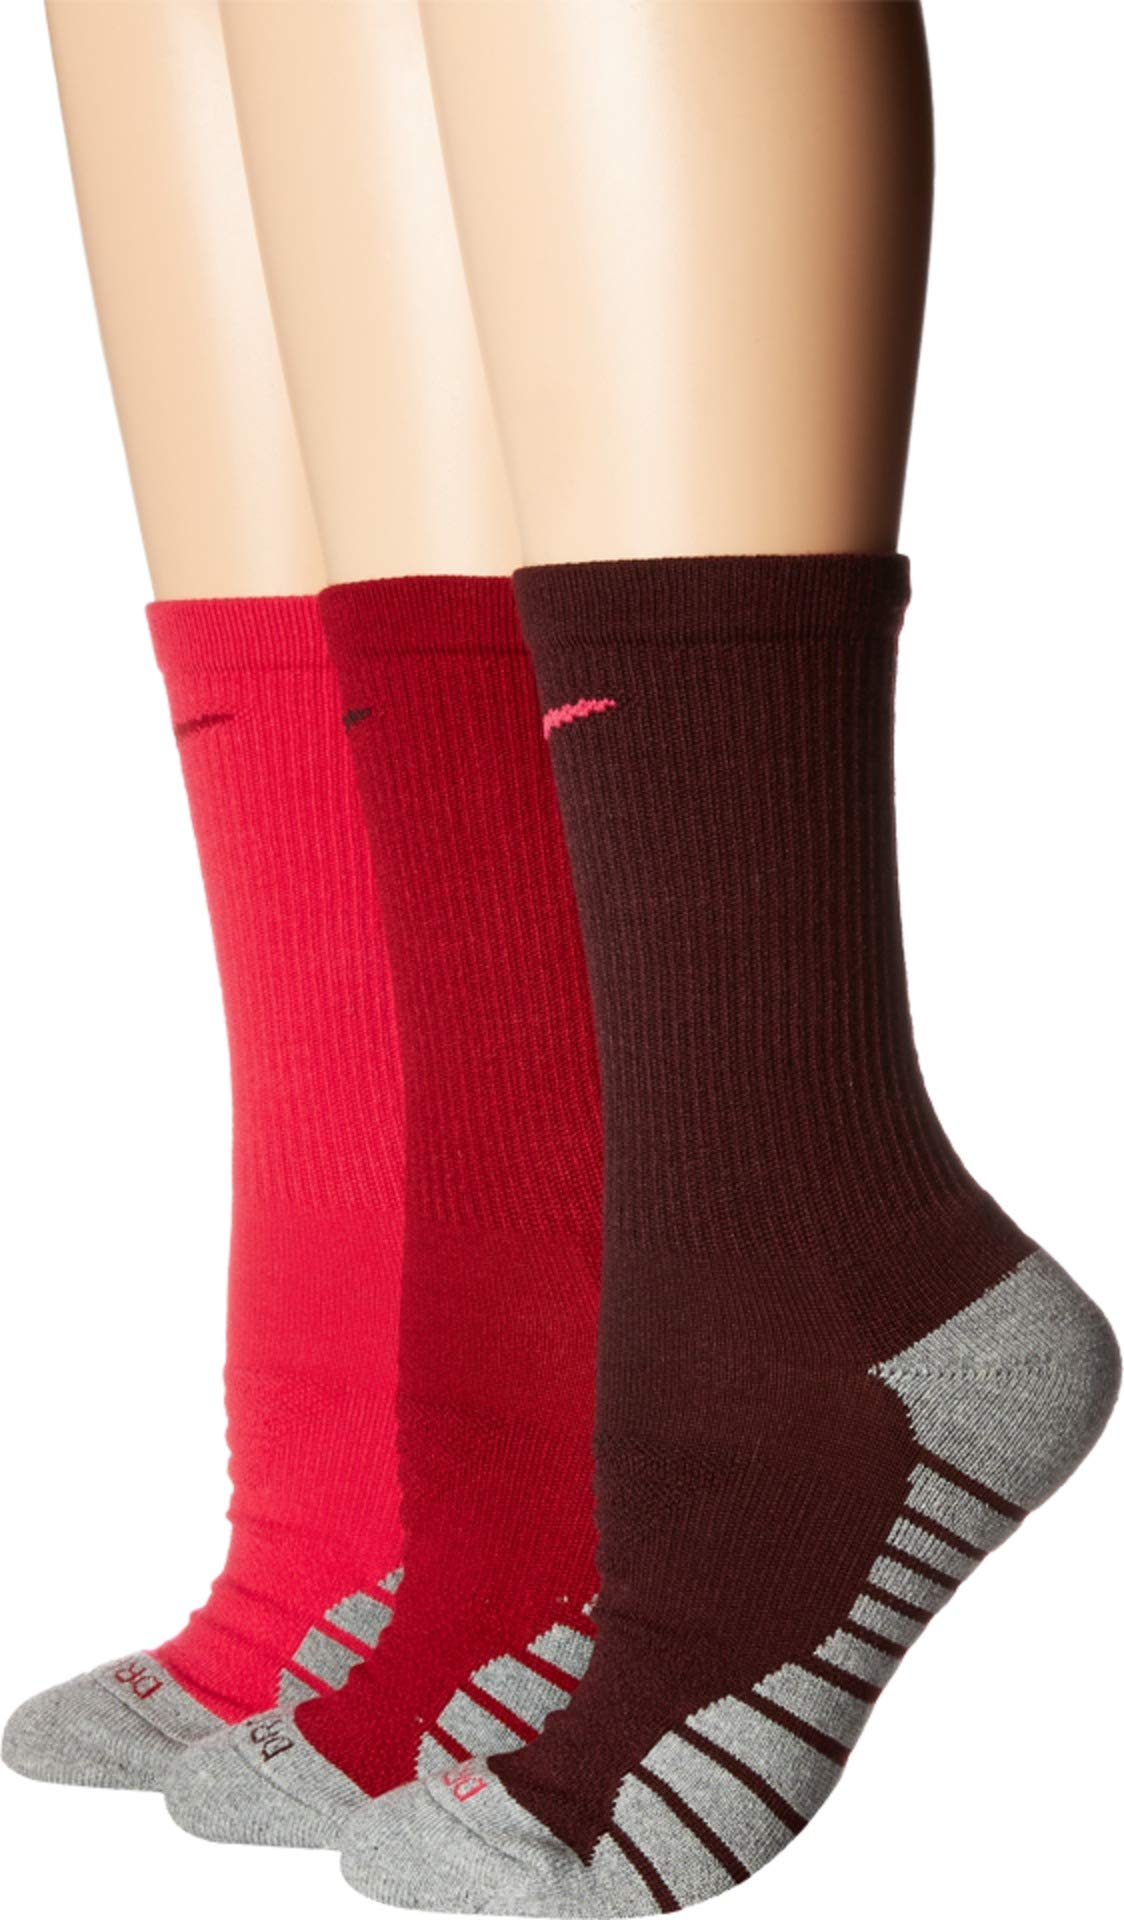 Women's Nike 3-pk. Dri-Fit Cushioned Crew Socks by Nike